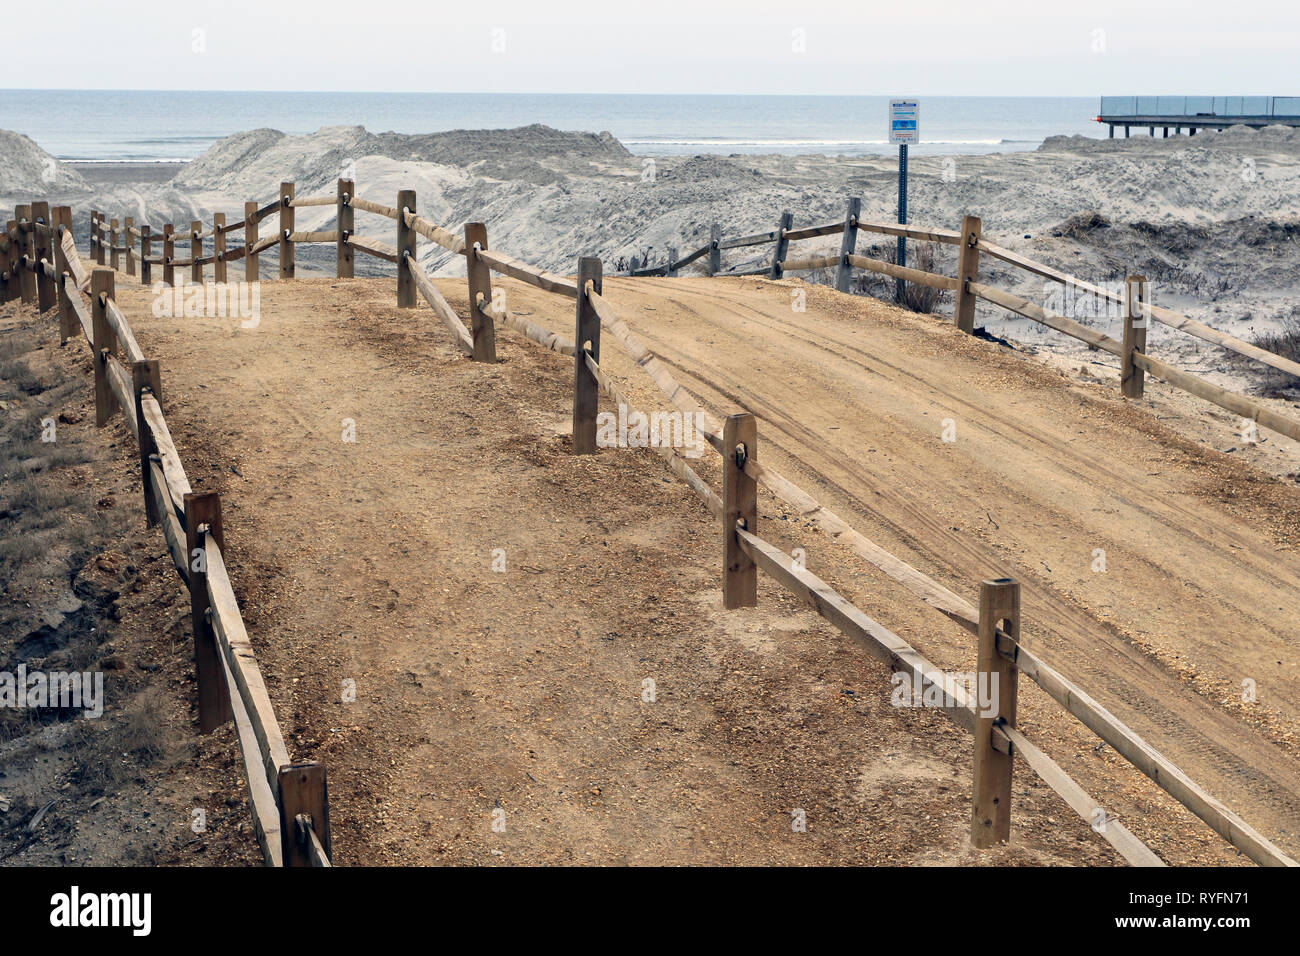 A surrealistic beach road in Wildwood by the Sea, New Jersey, USA - Stock Image